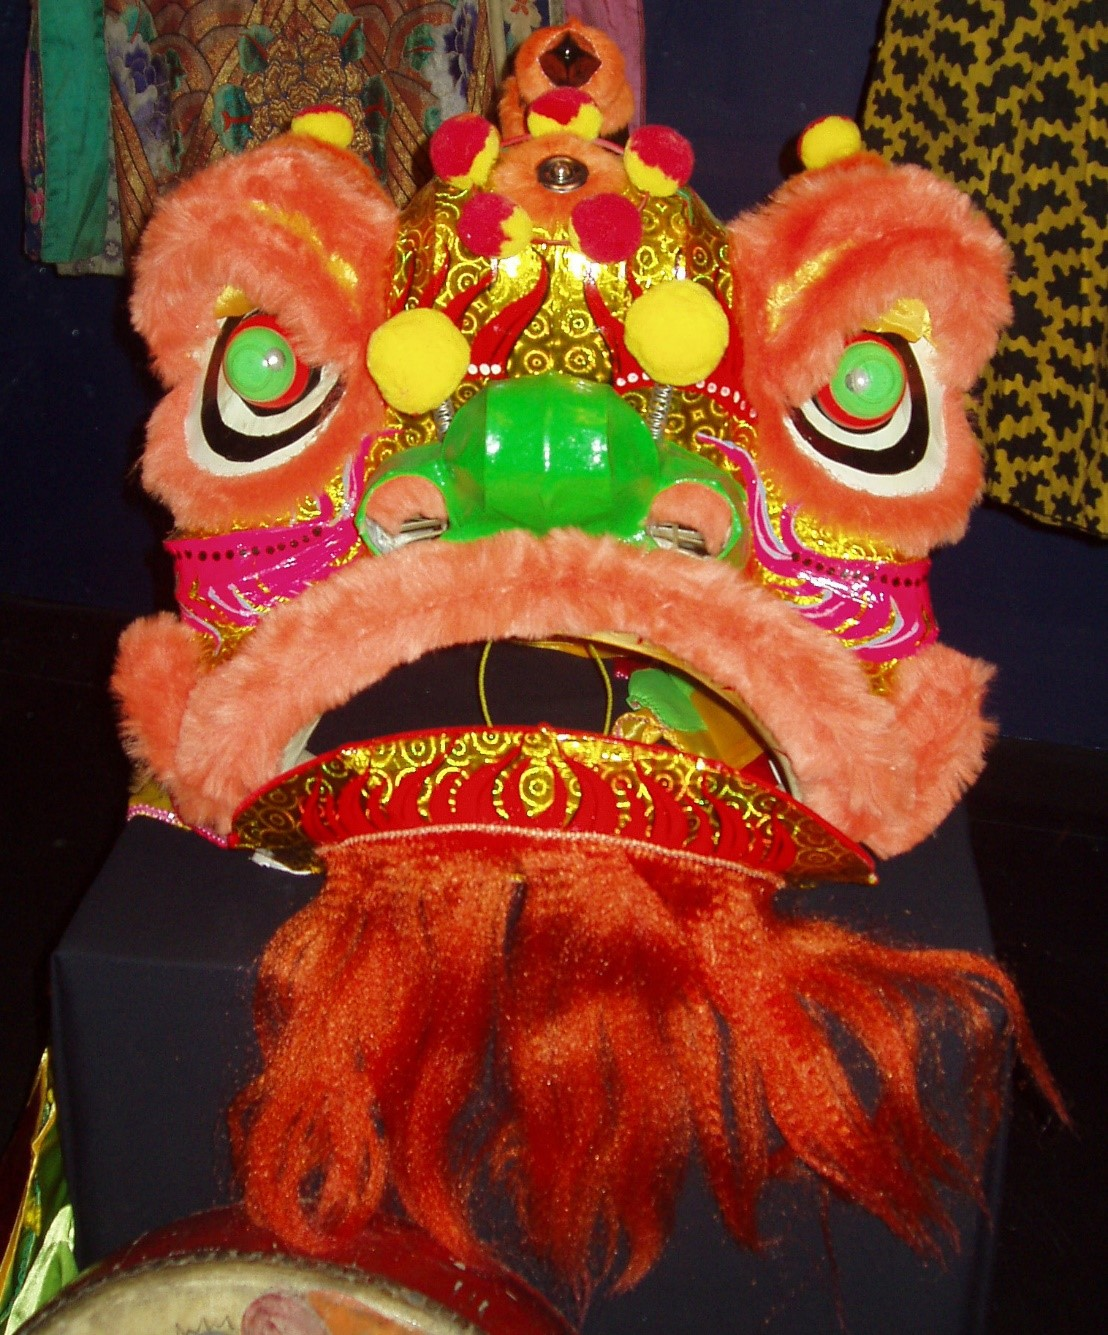 Large mask used for traditional Chinese lion dance. The lion is red pink and yellow with green eyes and nose and has a mouth that opens and closes.